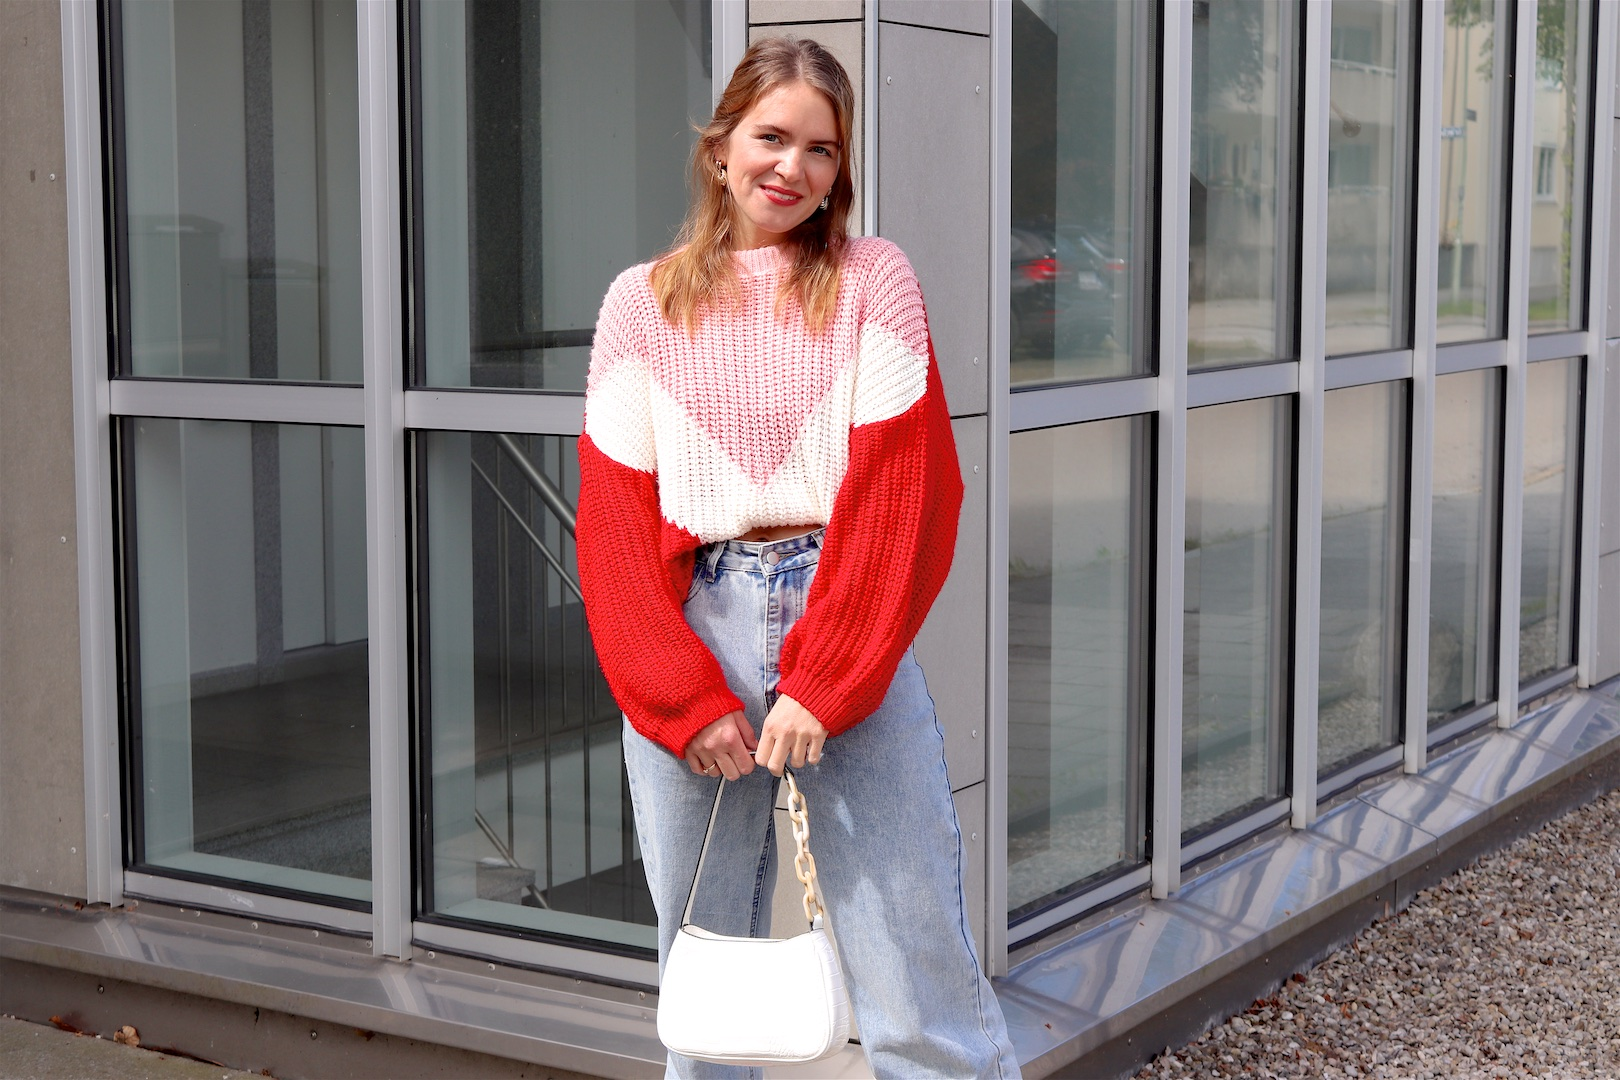 Geometric Pattern Sweater. Fashion Blogger Girl by Style Blog Heartfelt Hunt. Girl with blond half-up half-down hairstyle with scrunchie wearing a geometric pattern sweater, wide leg jeans, white 90s bag and red mules.